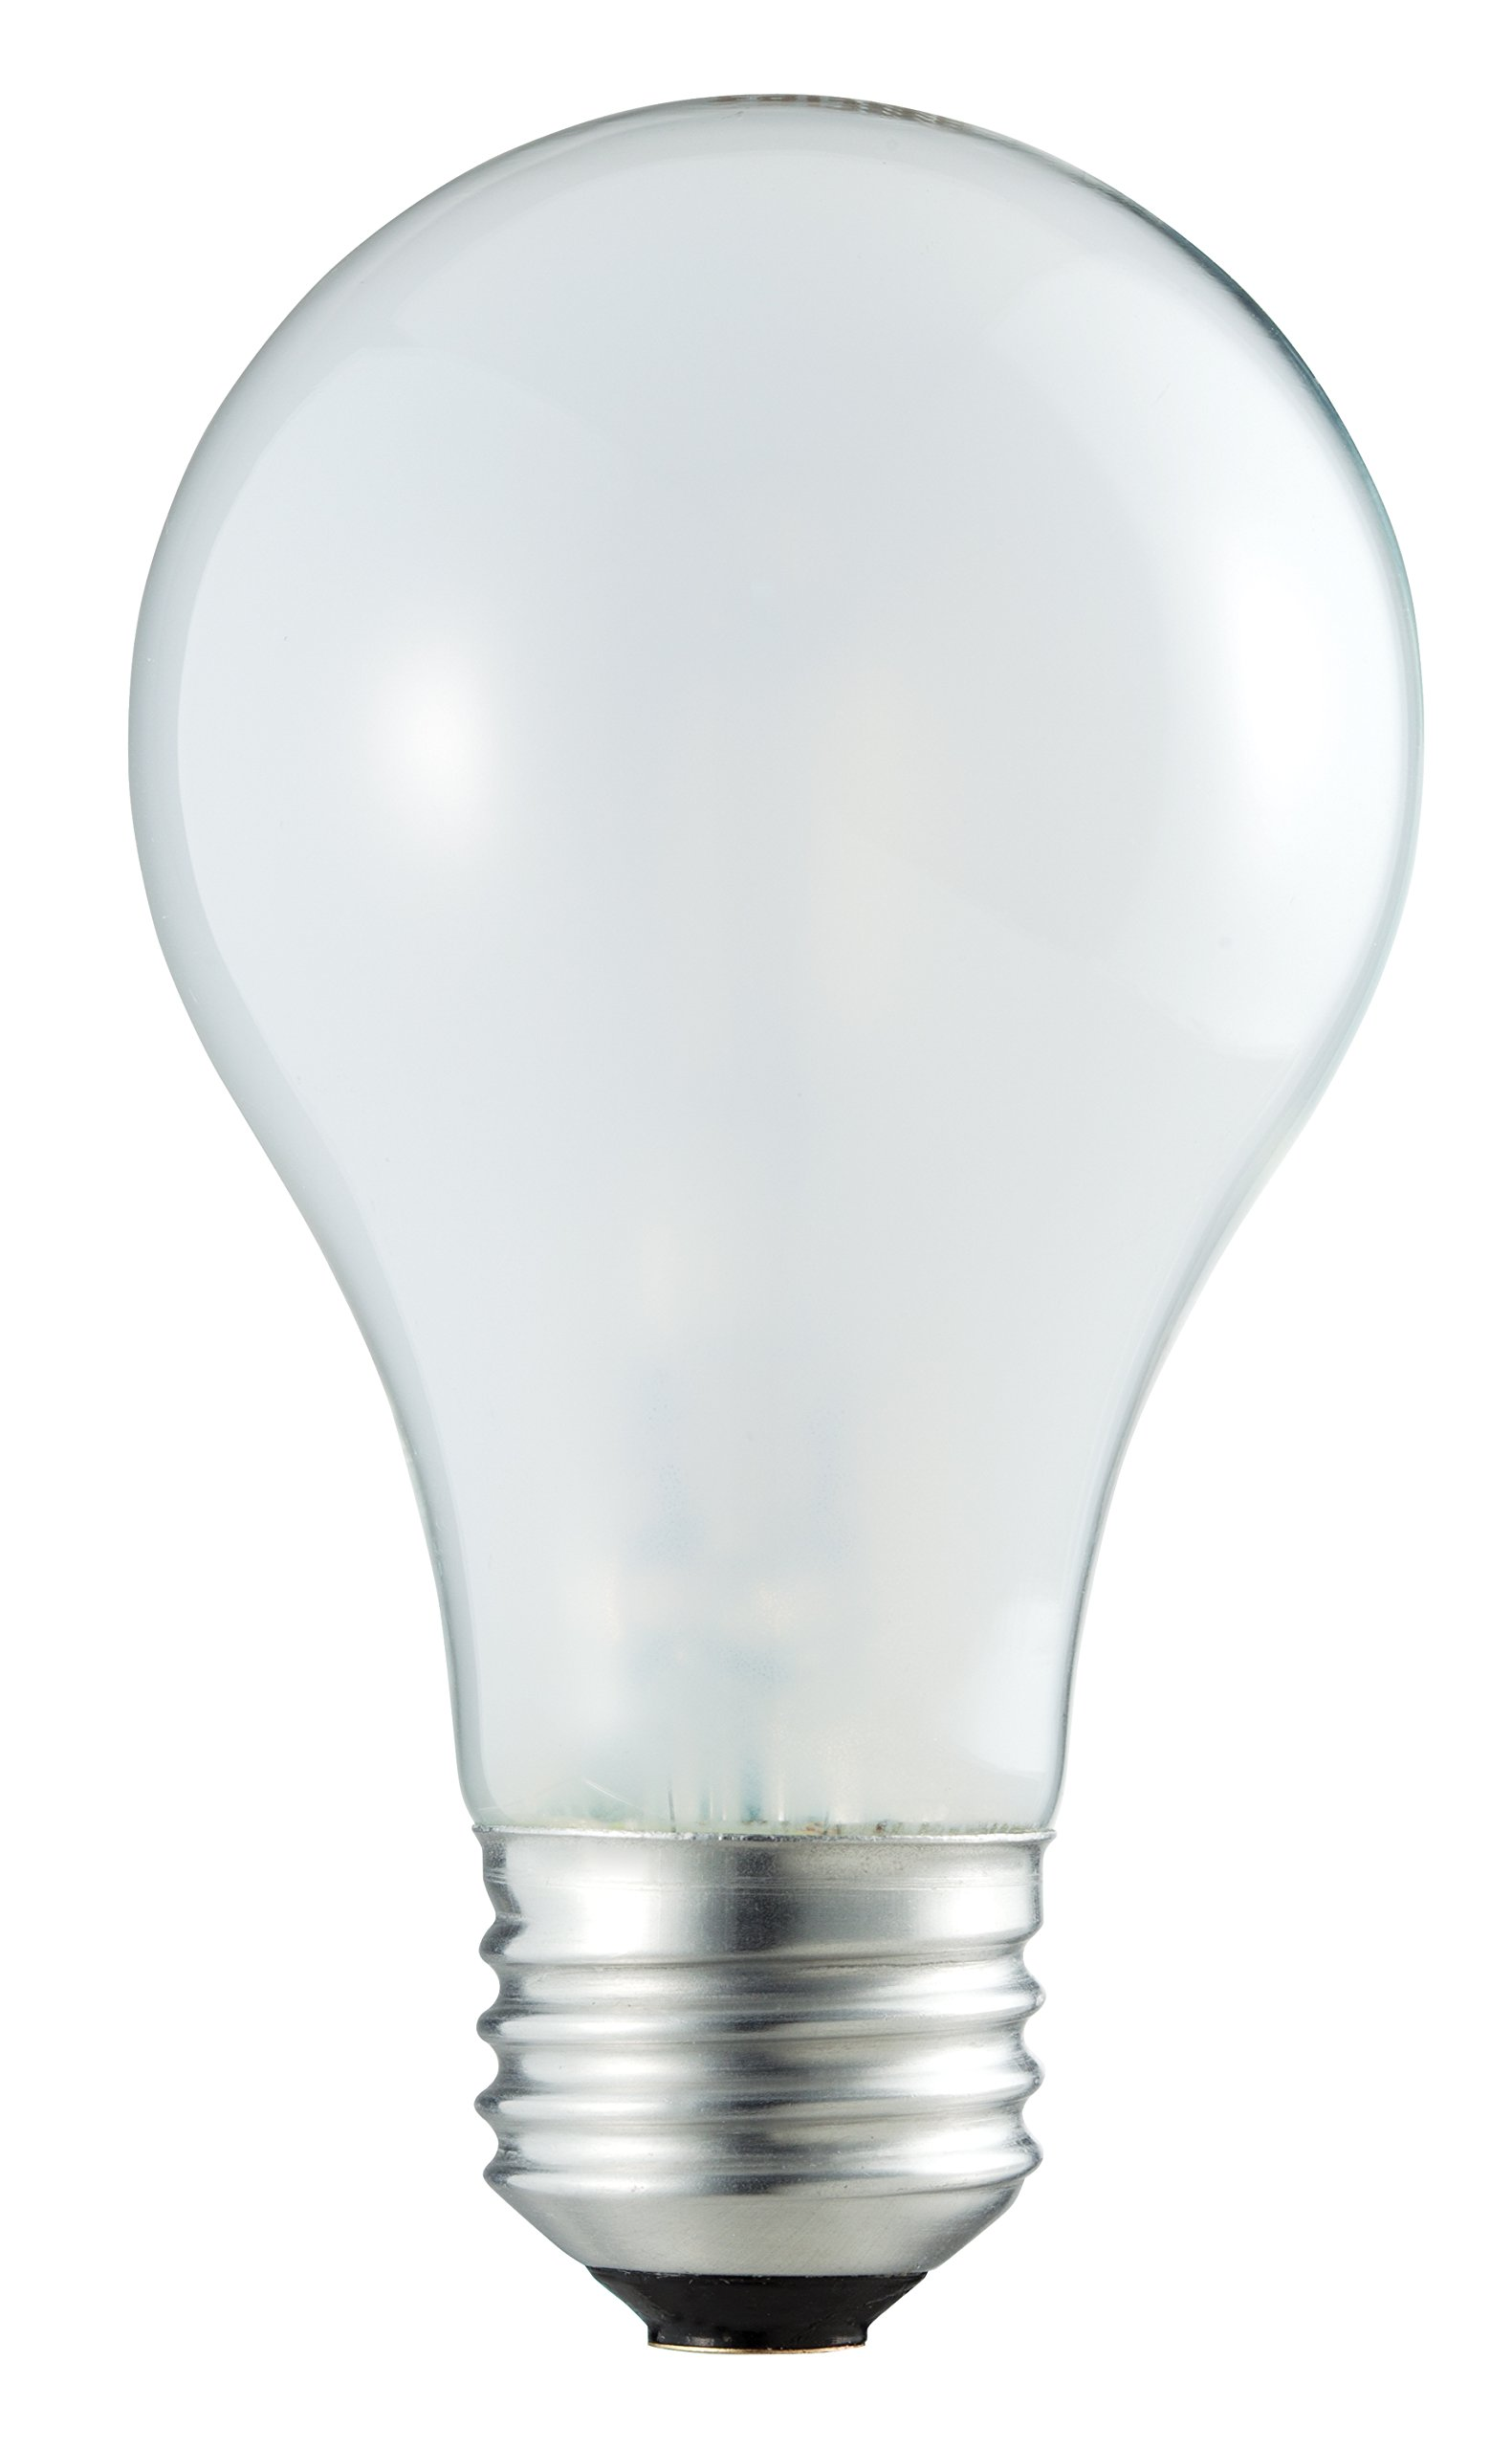 Philips 434274 60W Replacement Halogen A19 Dimmable Light Bulb (Pack of 6), Soft White